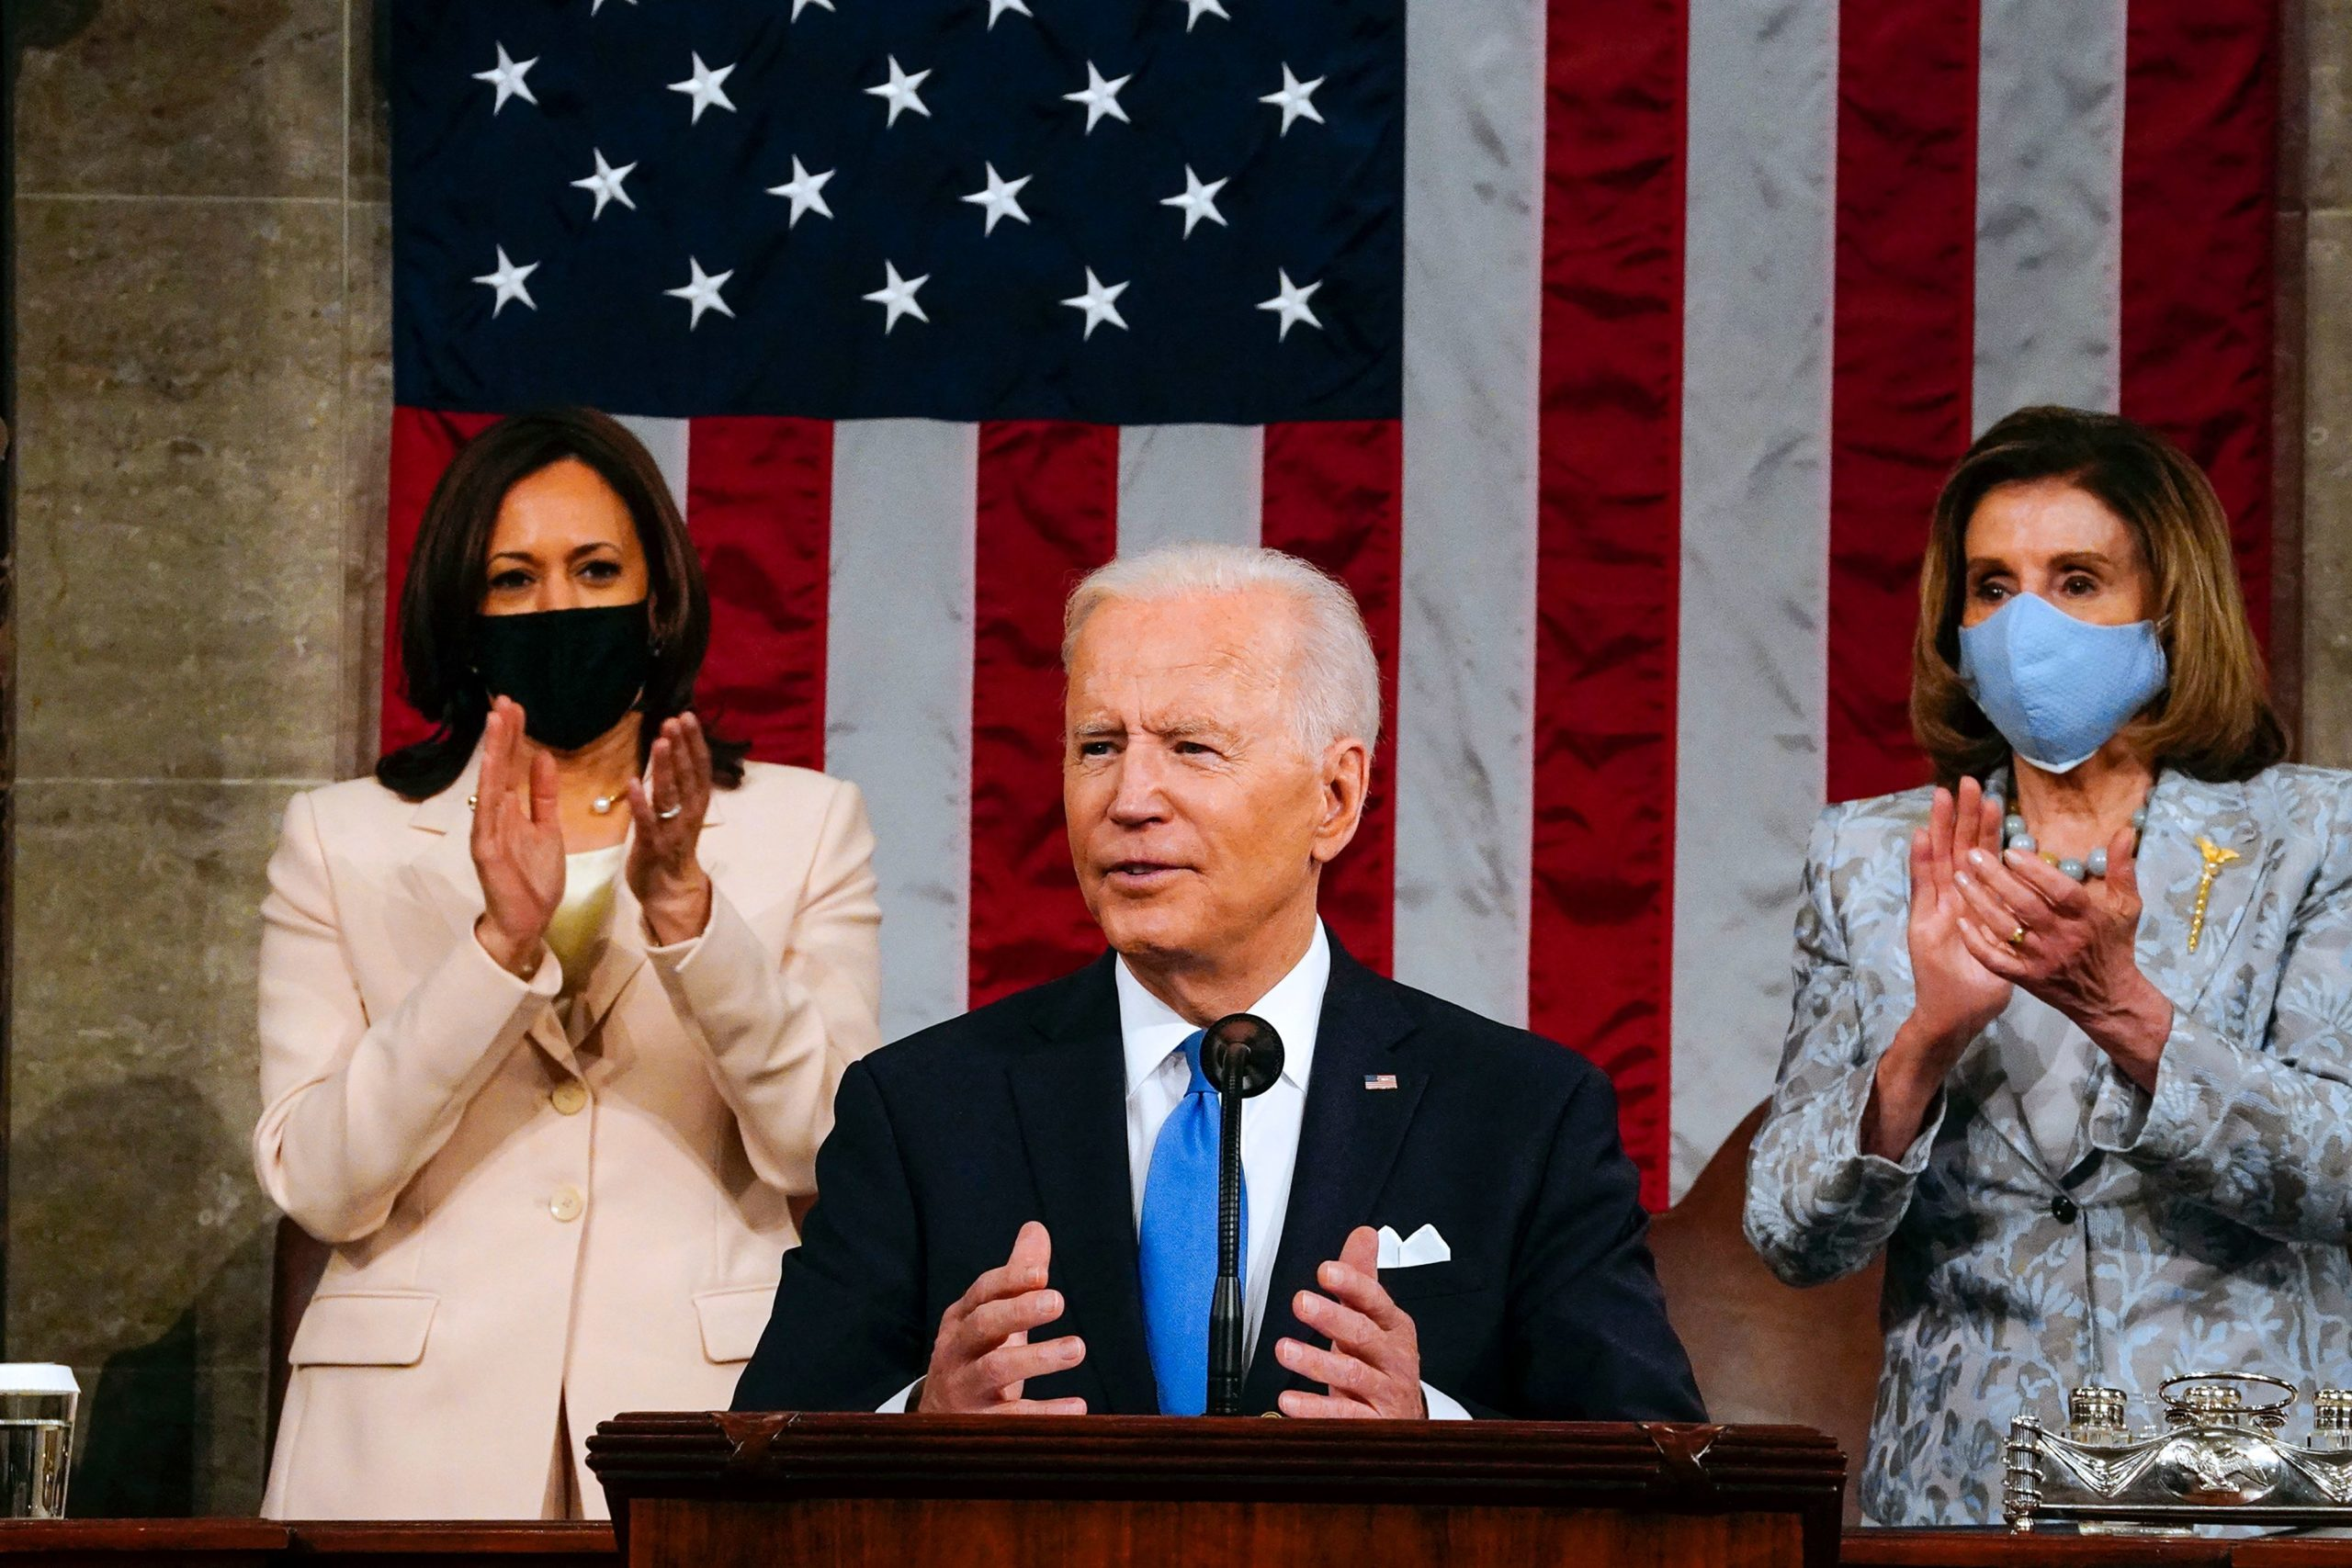 US Vice President Kamala Harris (L) and Speaker of the House of Representatives Nancy Pelos (R) applaud as US President Joe Biden addresses a joint session of Congress at the US Capitol in Washington, DC, on April 28, 2021. (Photo by Melina Mara / POOL / AFP) (Photo by MELINA MARA/POOL/AFP via Getty Images)